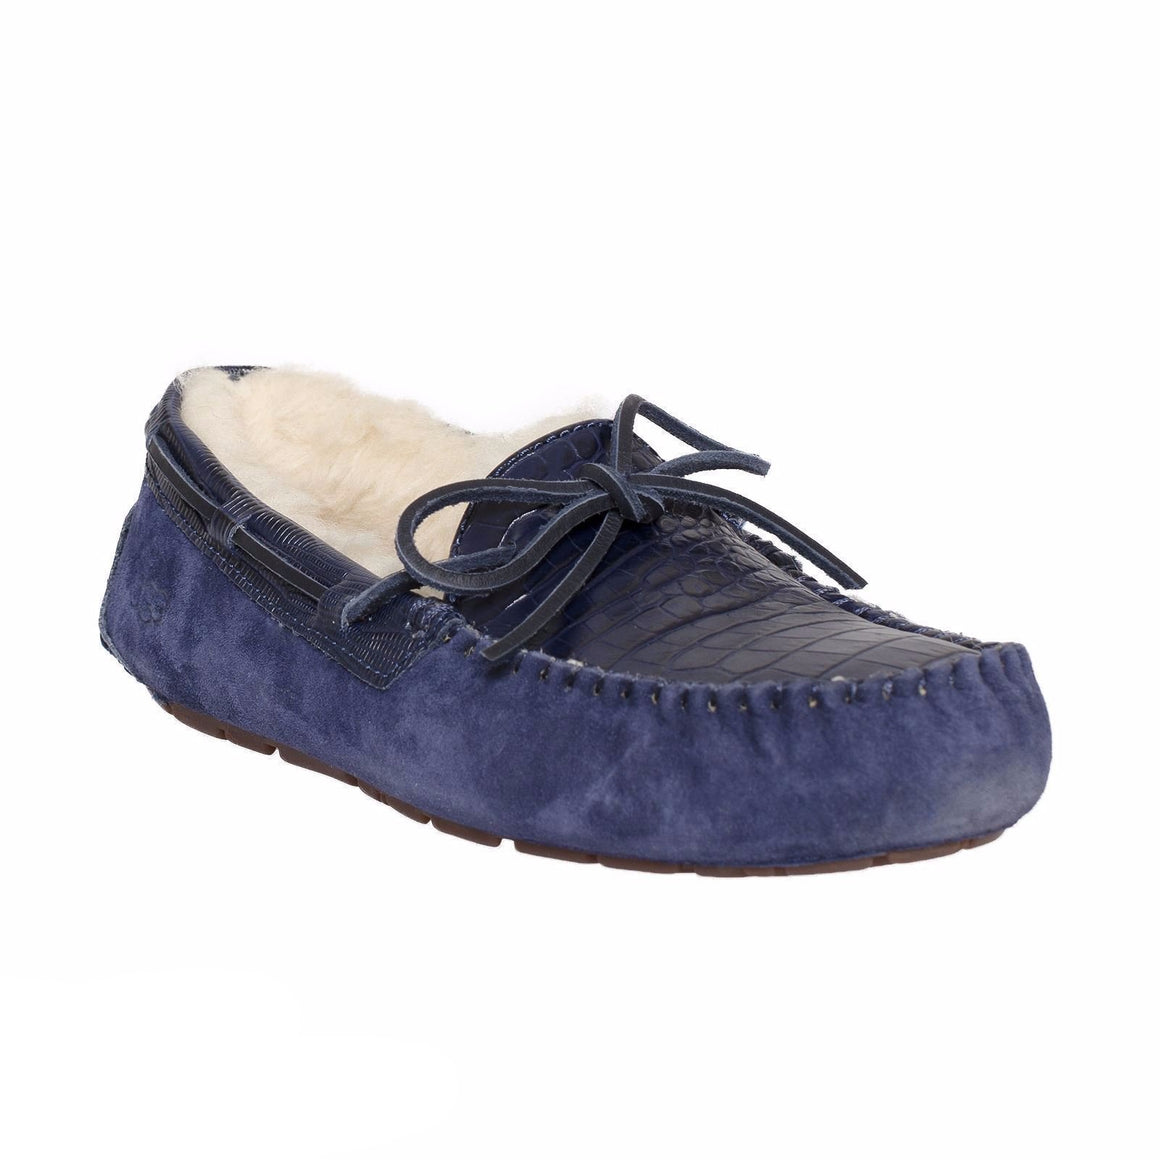 UGG Dakota Croco Navy Slippers